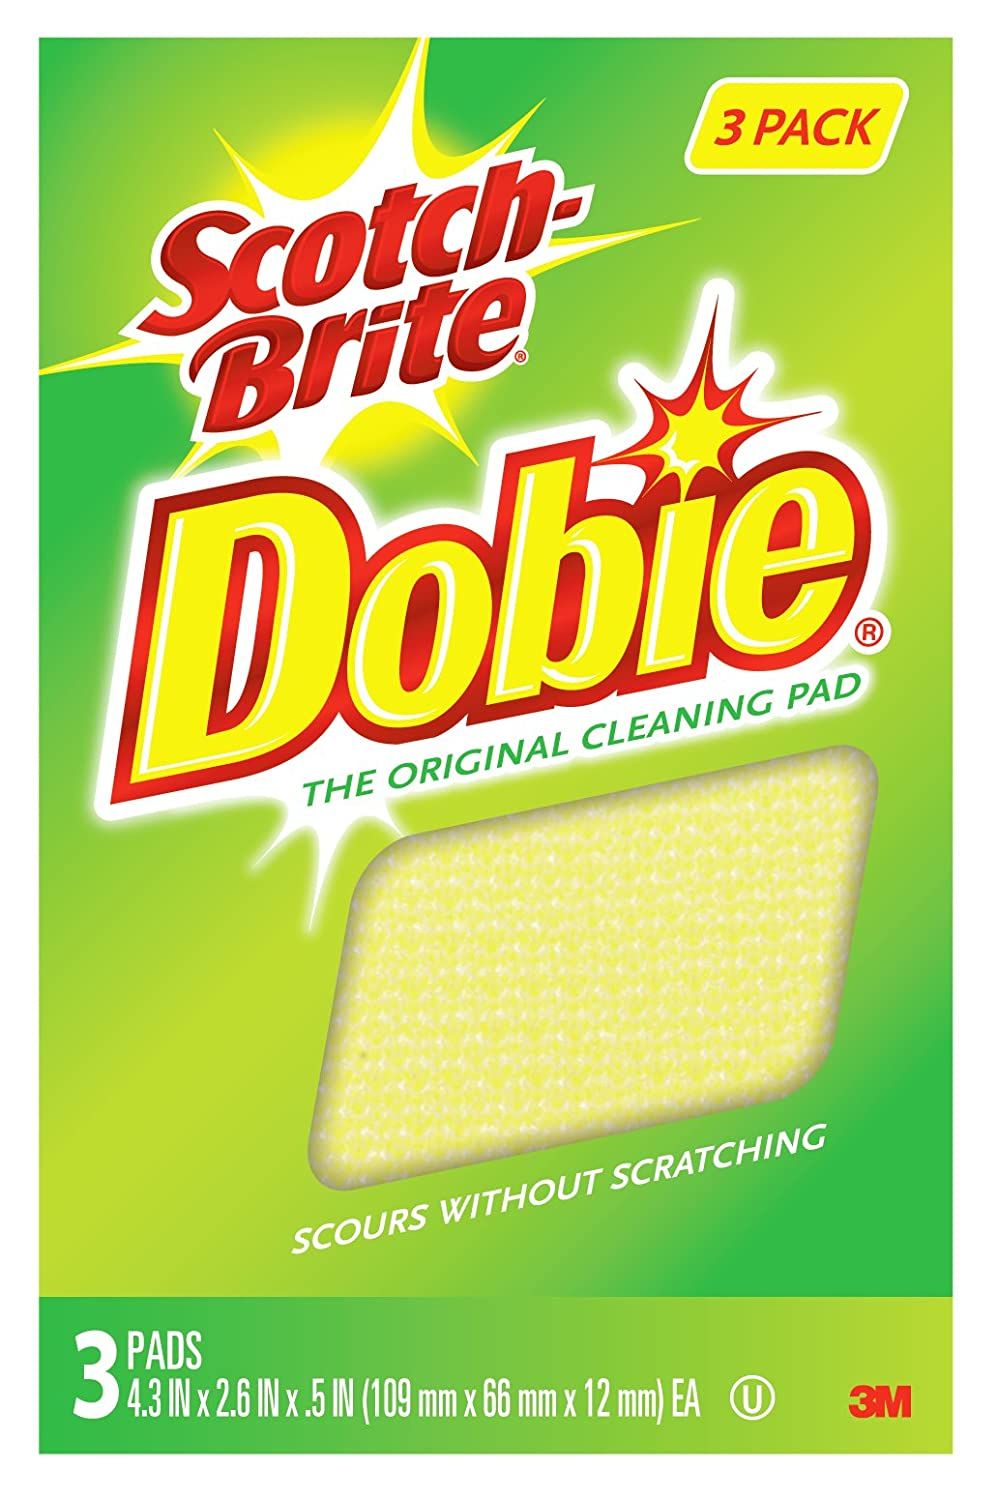 MMM7232F - Scotch-Brite Dobie All Purpose Cleaning Pad